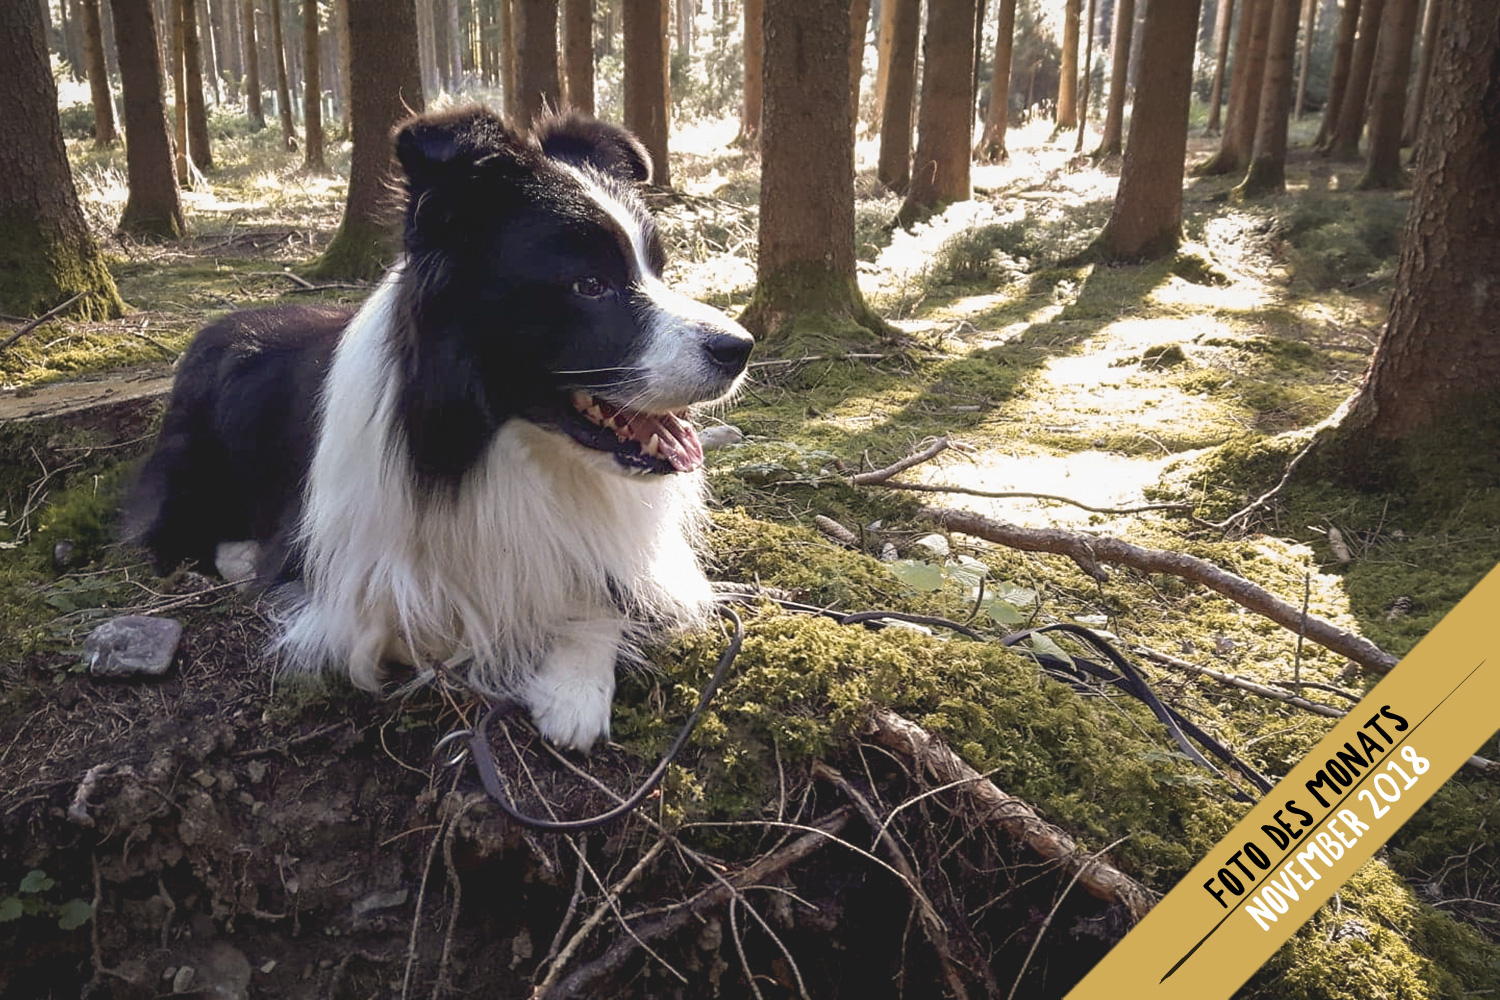 Herbstwald: Buddy (Ch Broadmeadows Body and Soul)